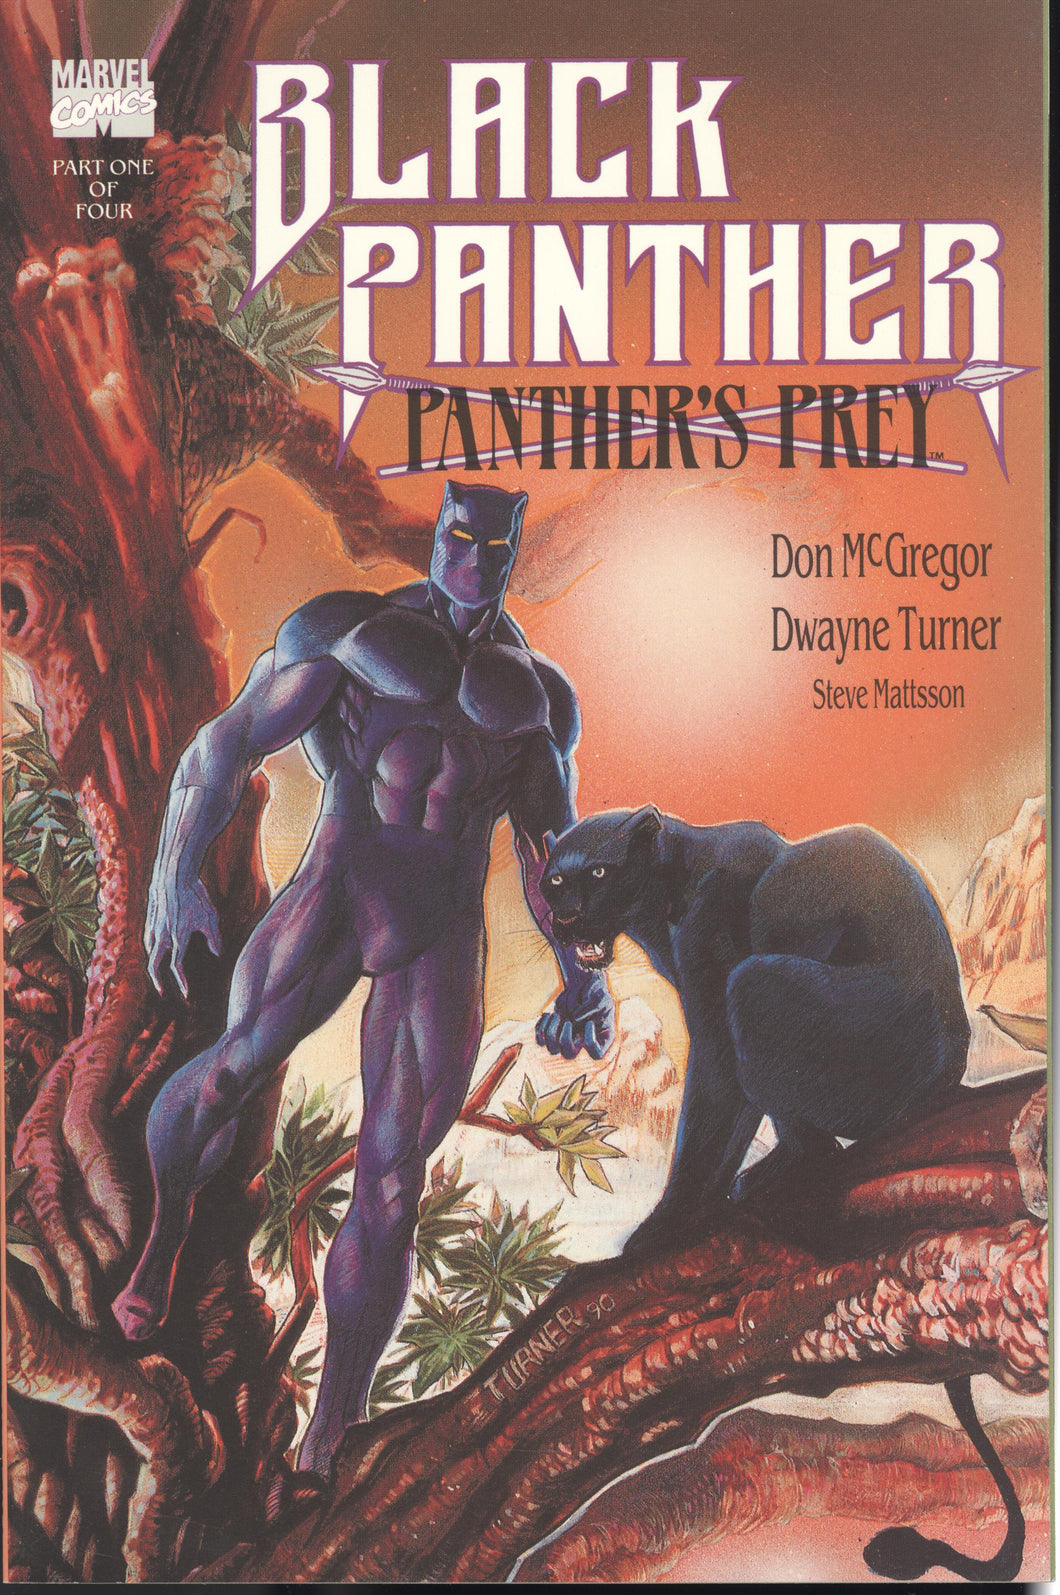 BLACK PANTHER: PANTHERS PREY (1991 Marvel) #1-4 COMPLETE SET